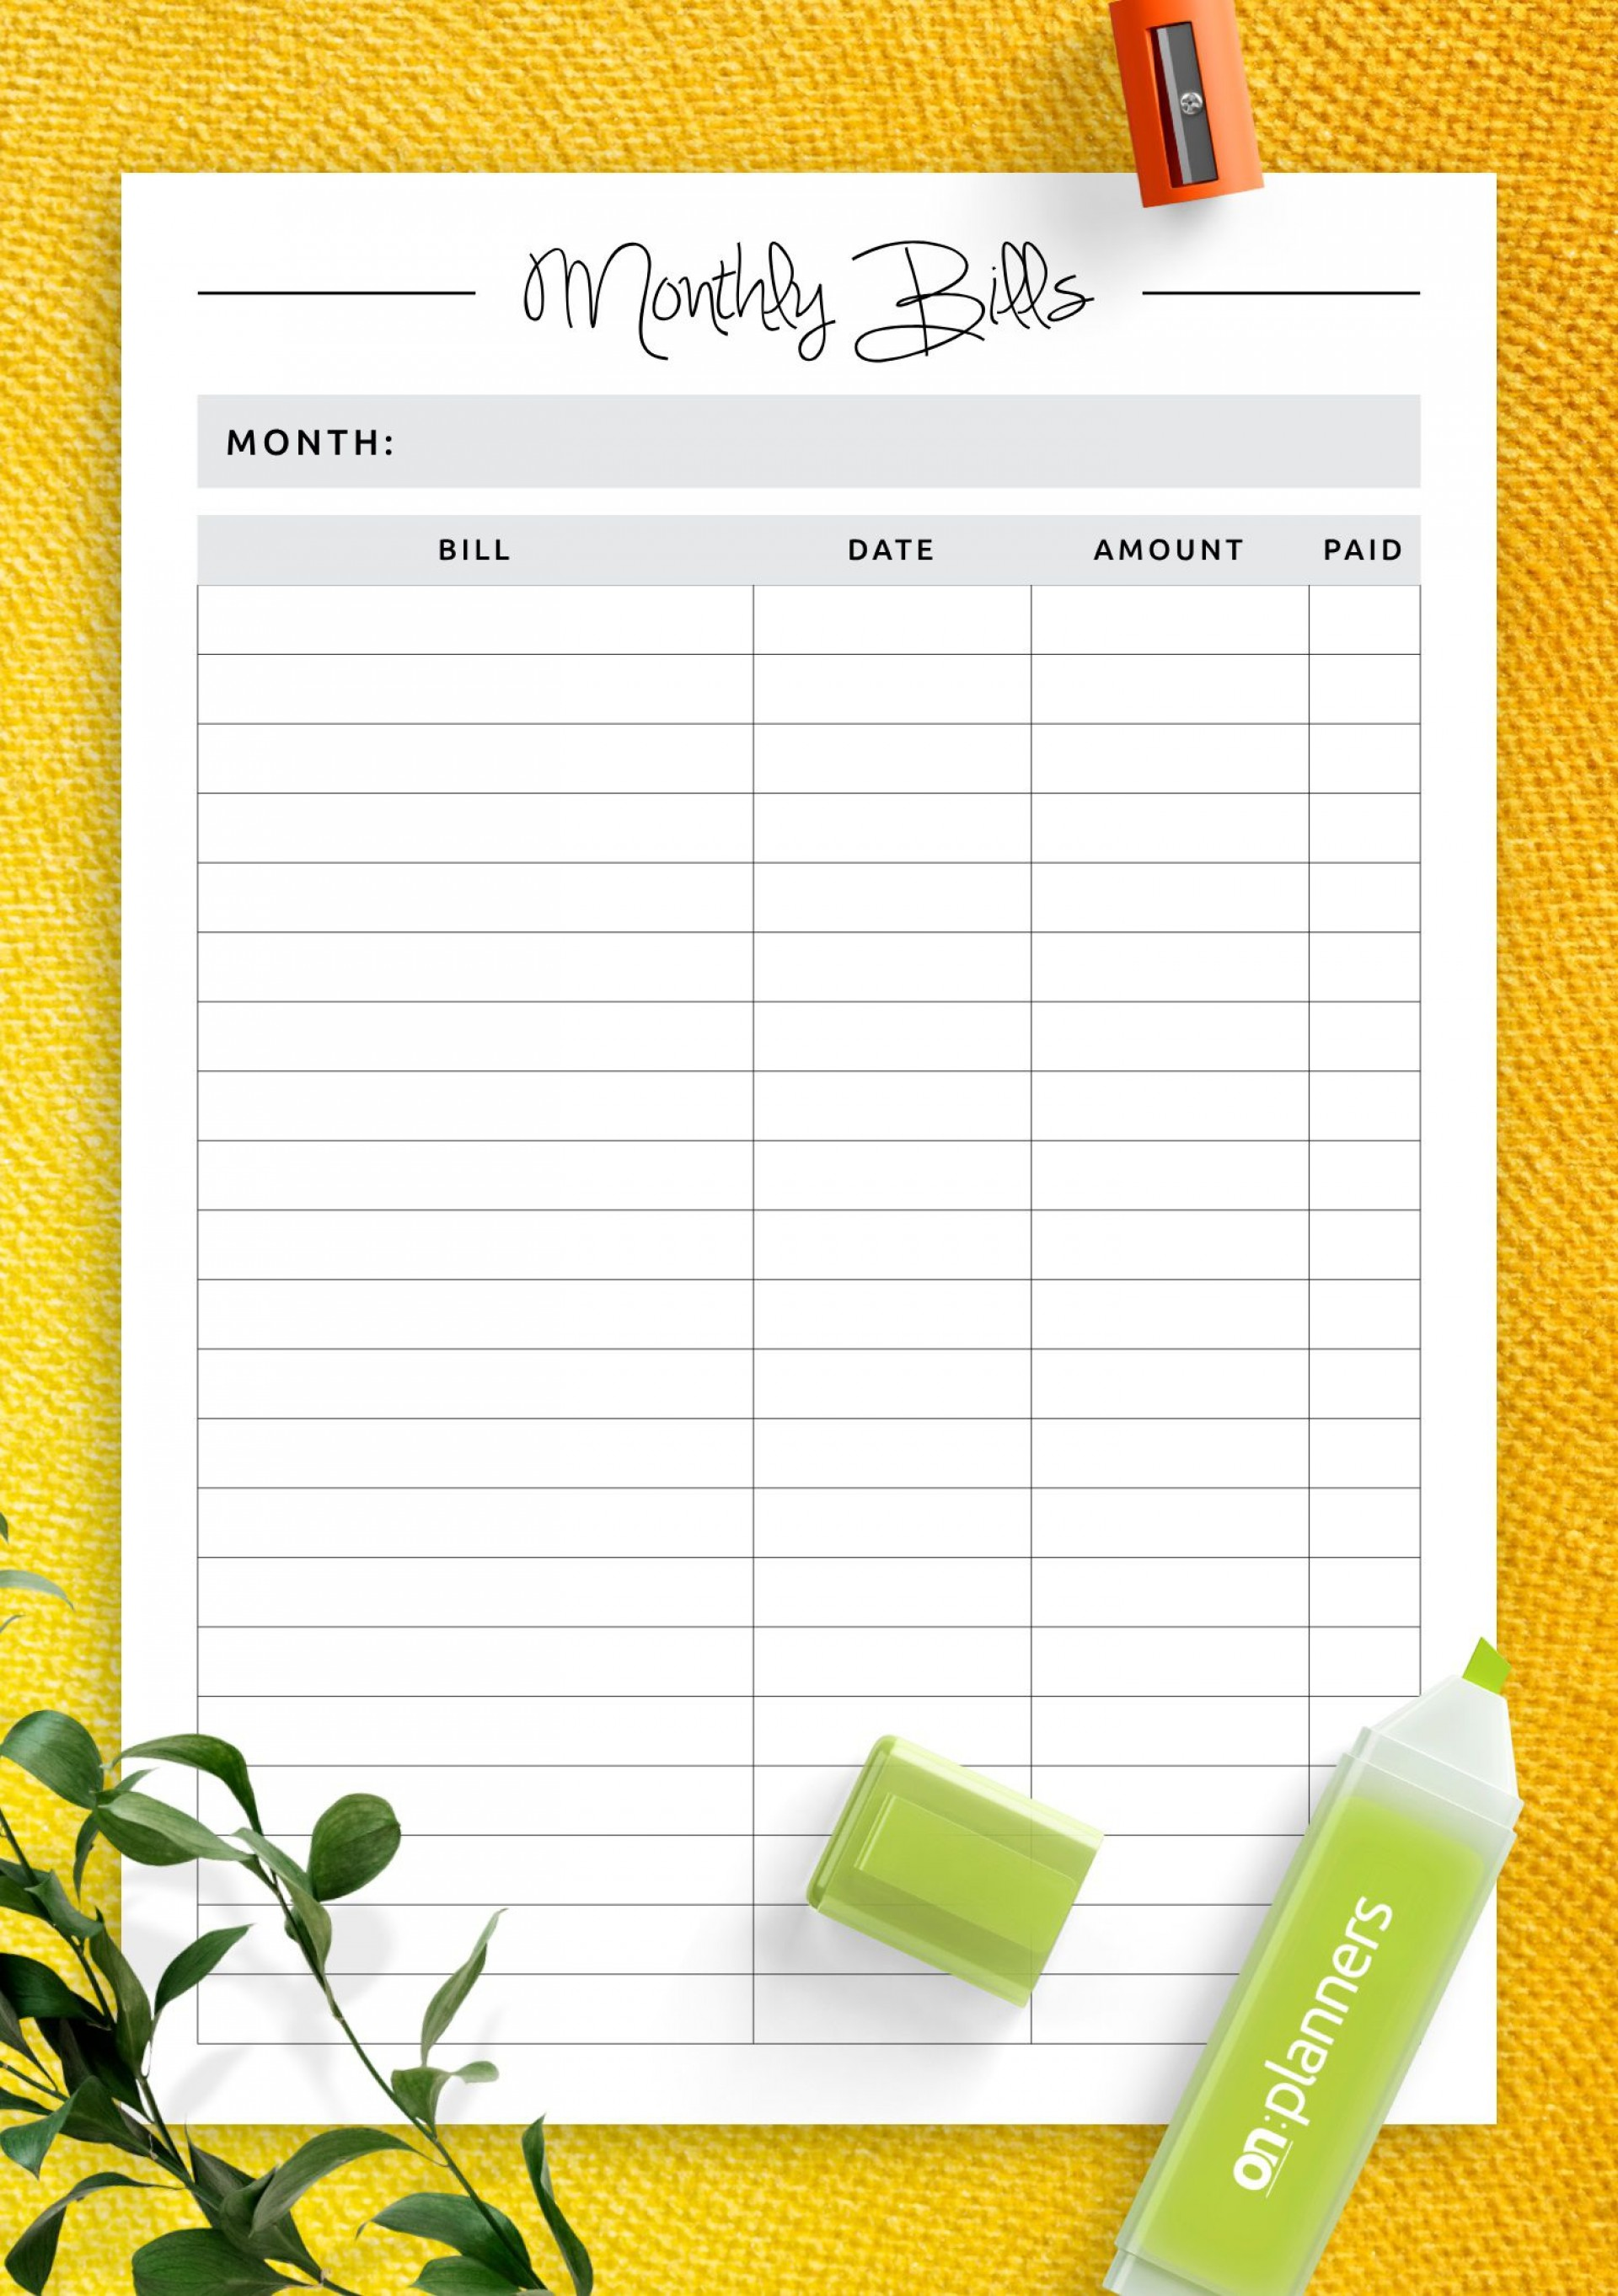 007 Awful Simple Weekly Budget Template Photo  Planner Personal Printable1920